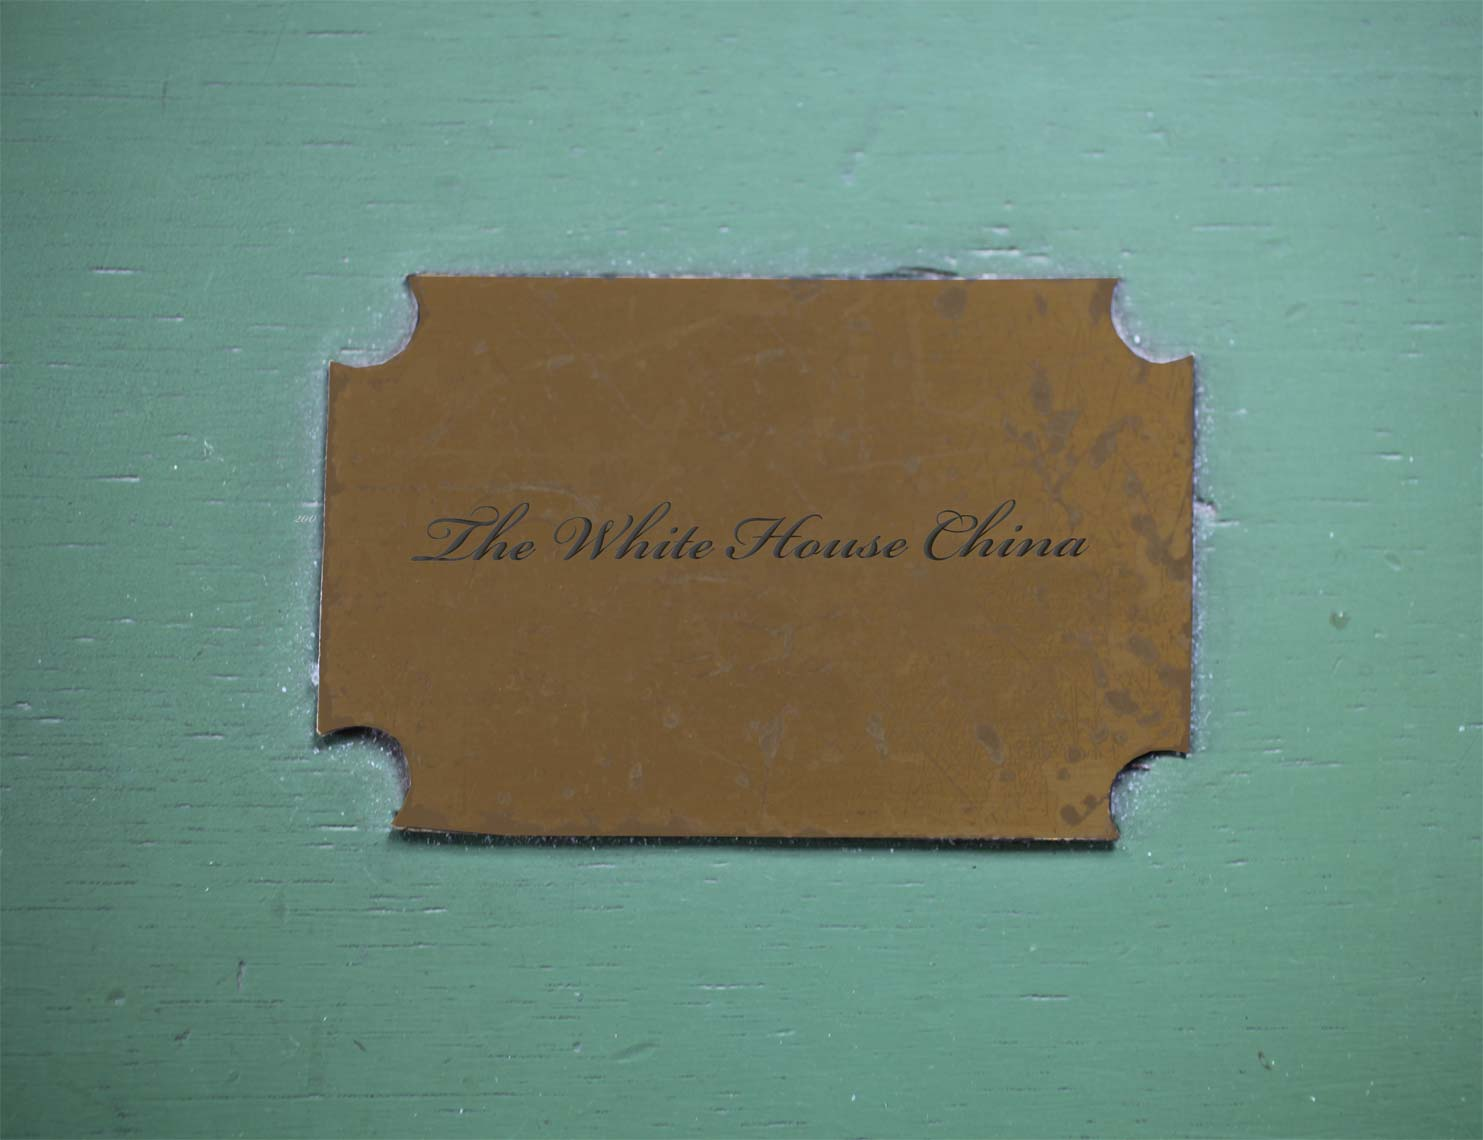 web-White-House-China-Brass-Plaque